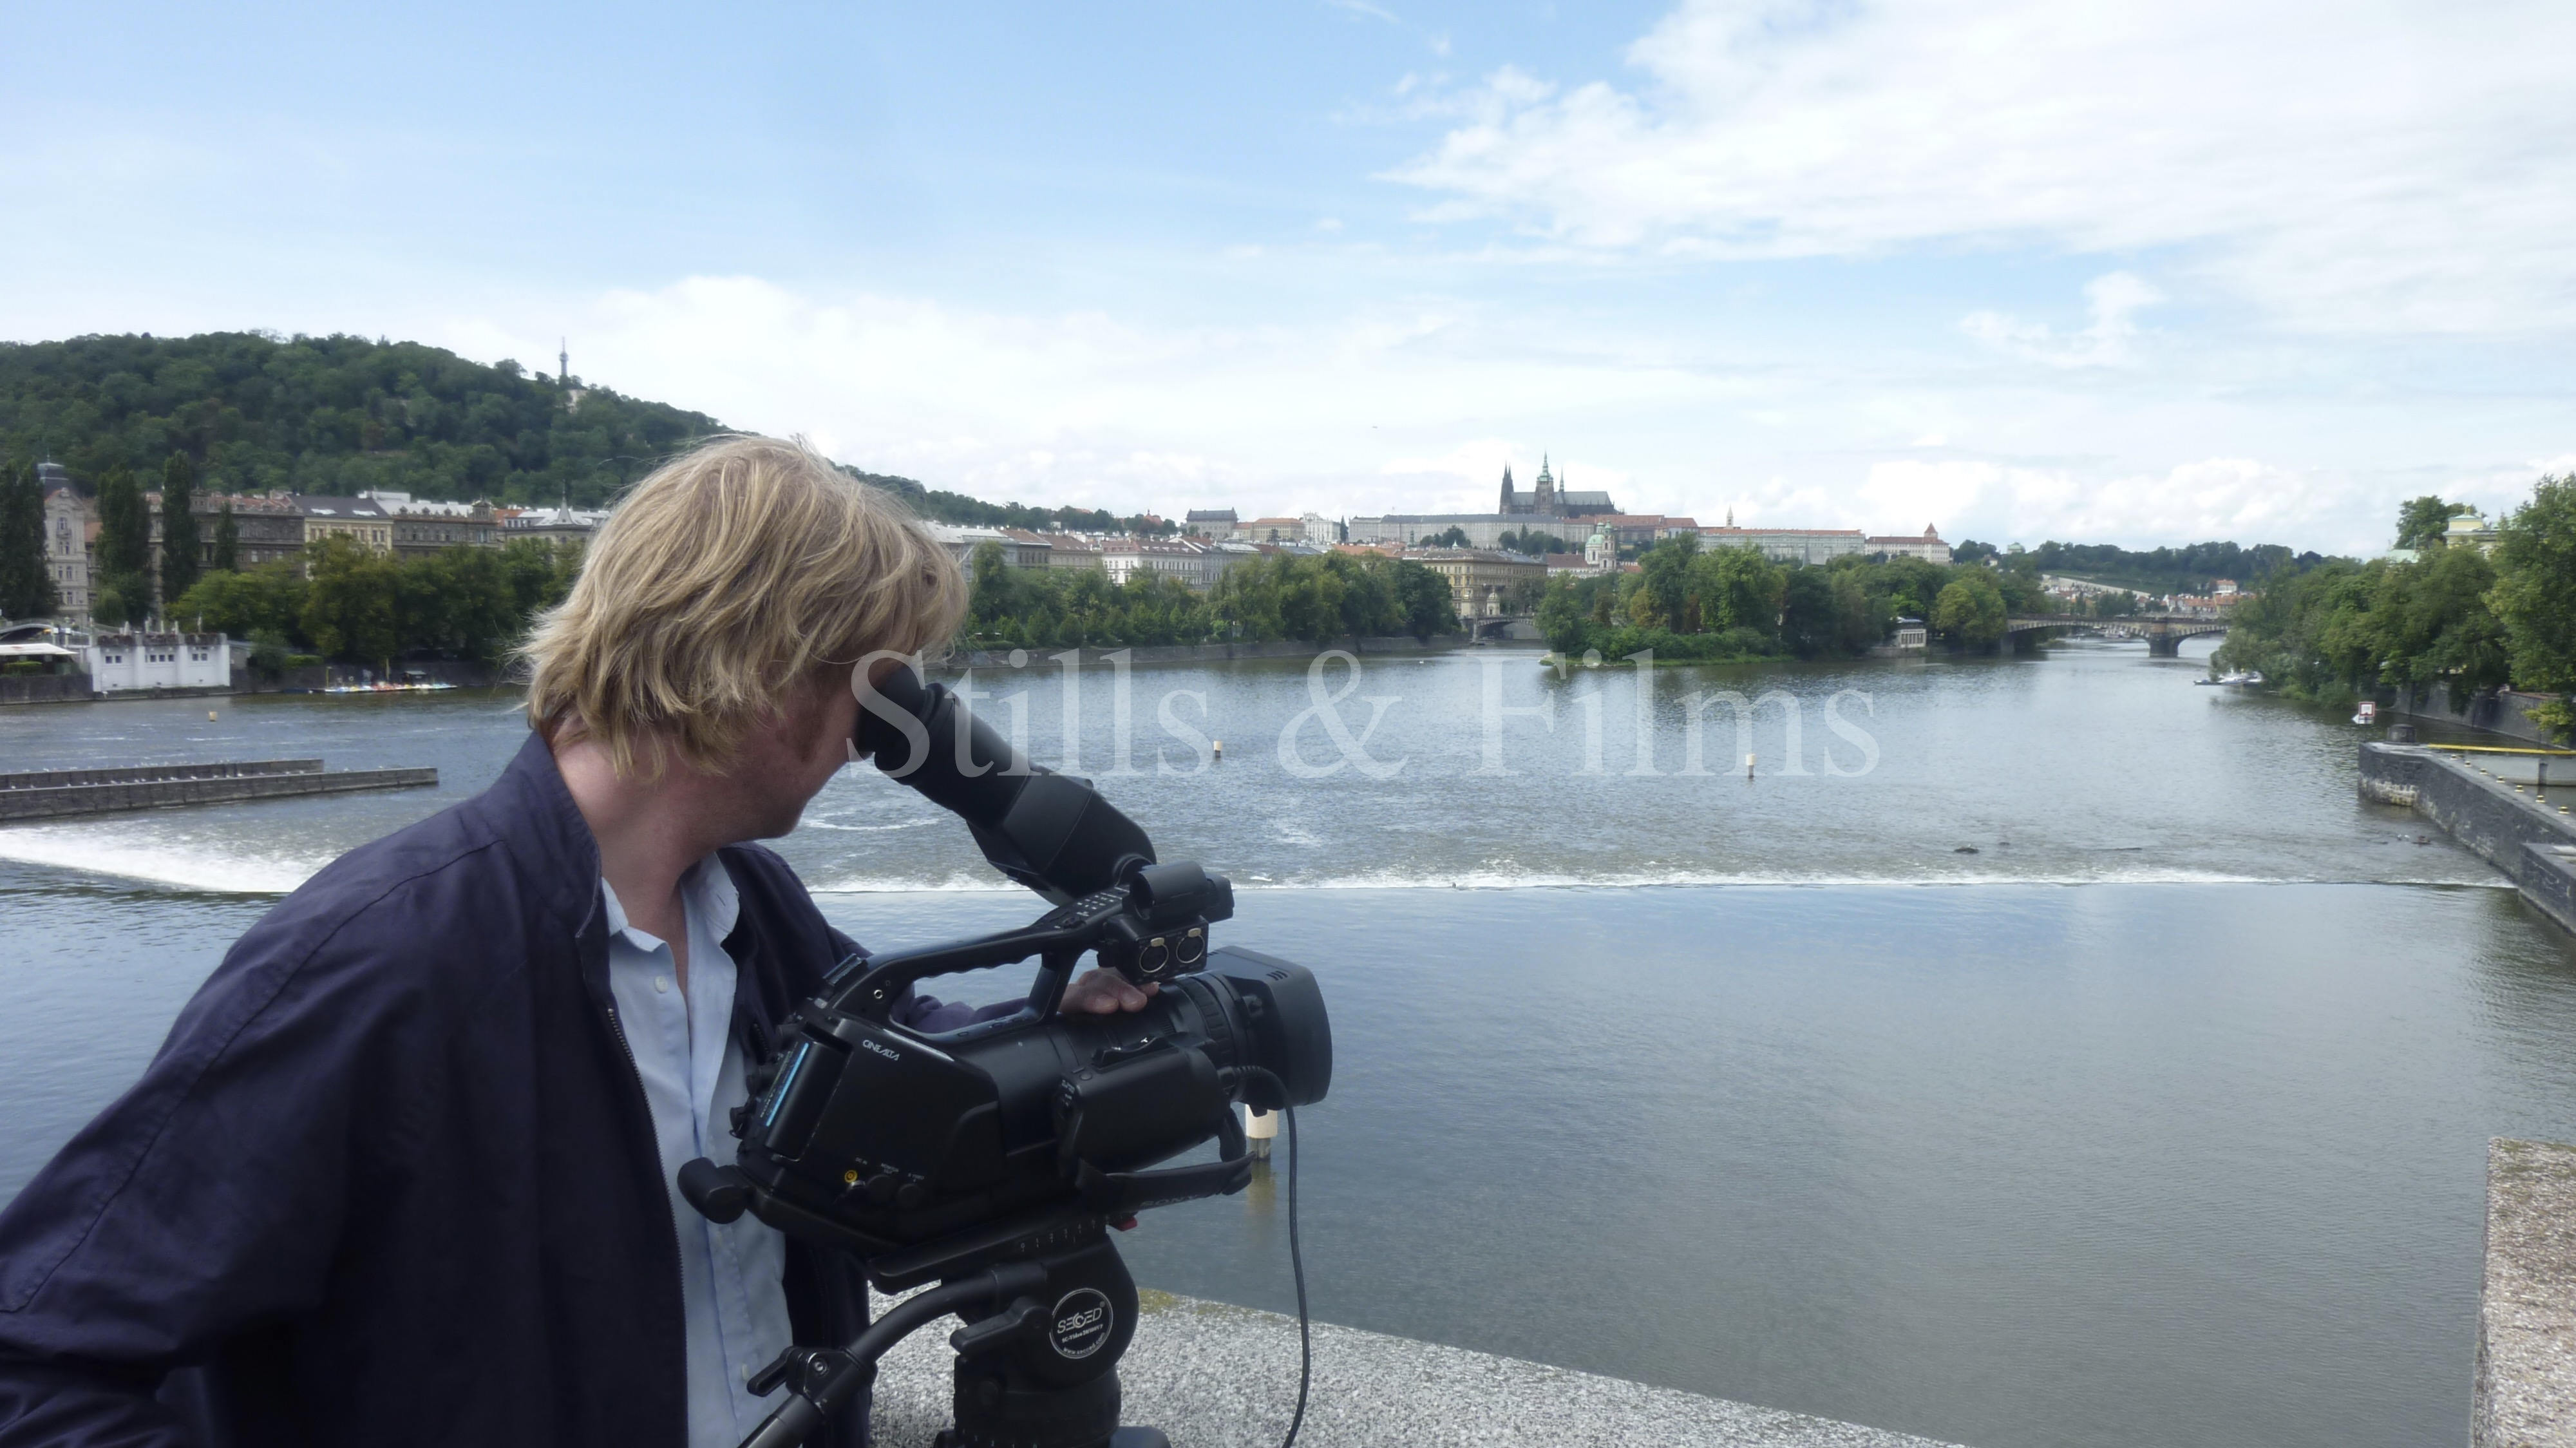 Video Crew Prague filming at the Vlatava River